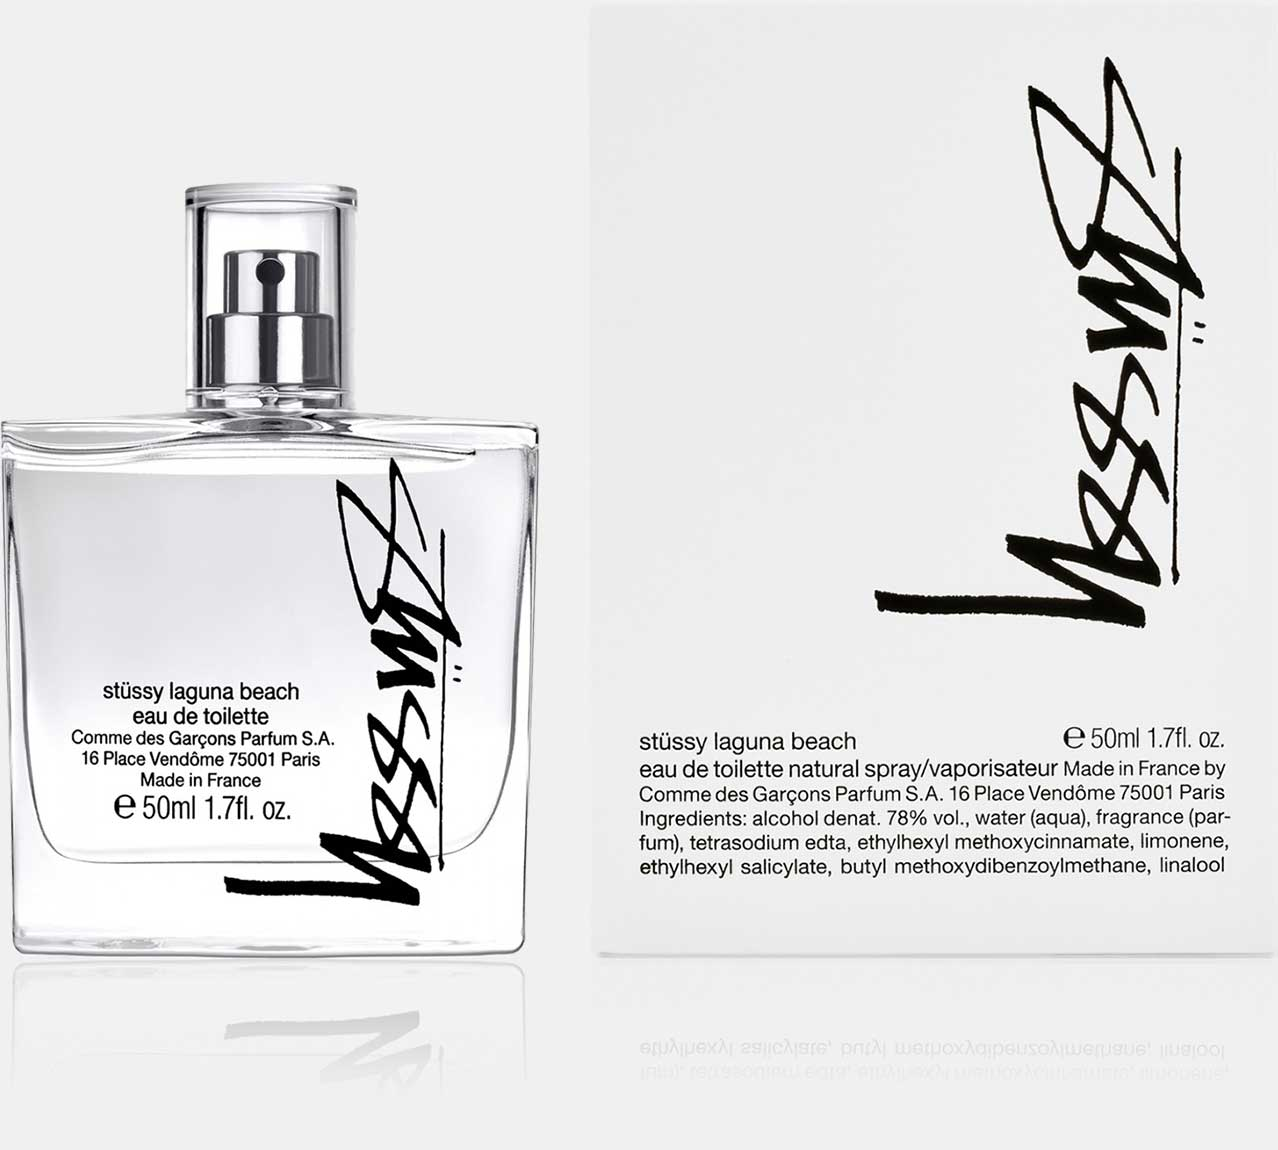 Stüssy Laguna Beach - Eau de Toilette (50ml Natural Spray)